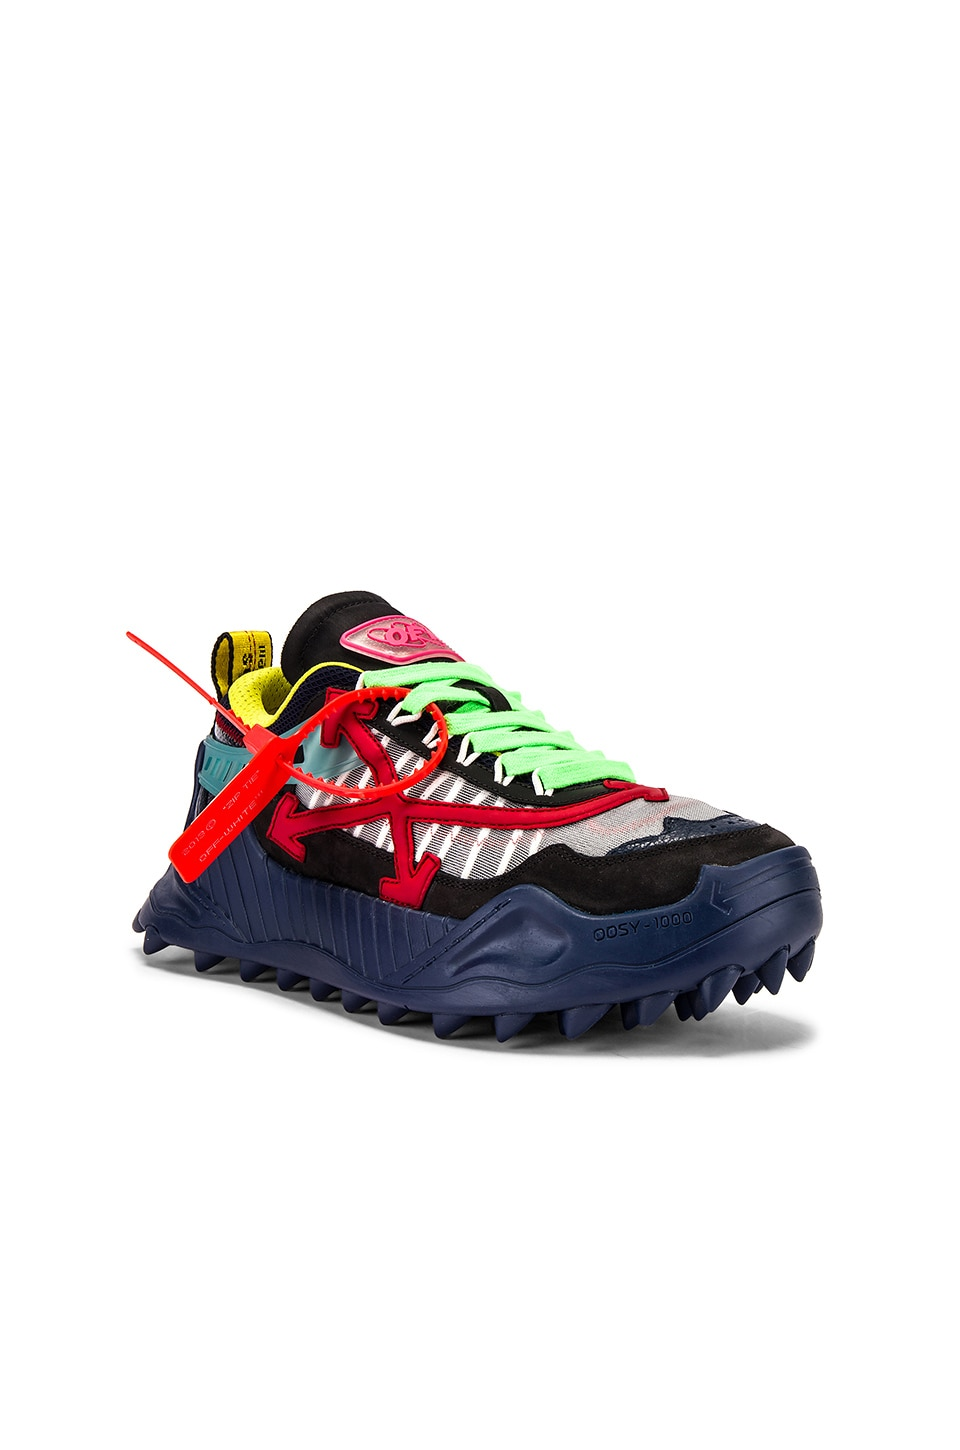 OFF-WHITE Odsy-1000 Sneaker in Blue & Red